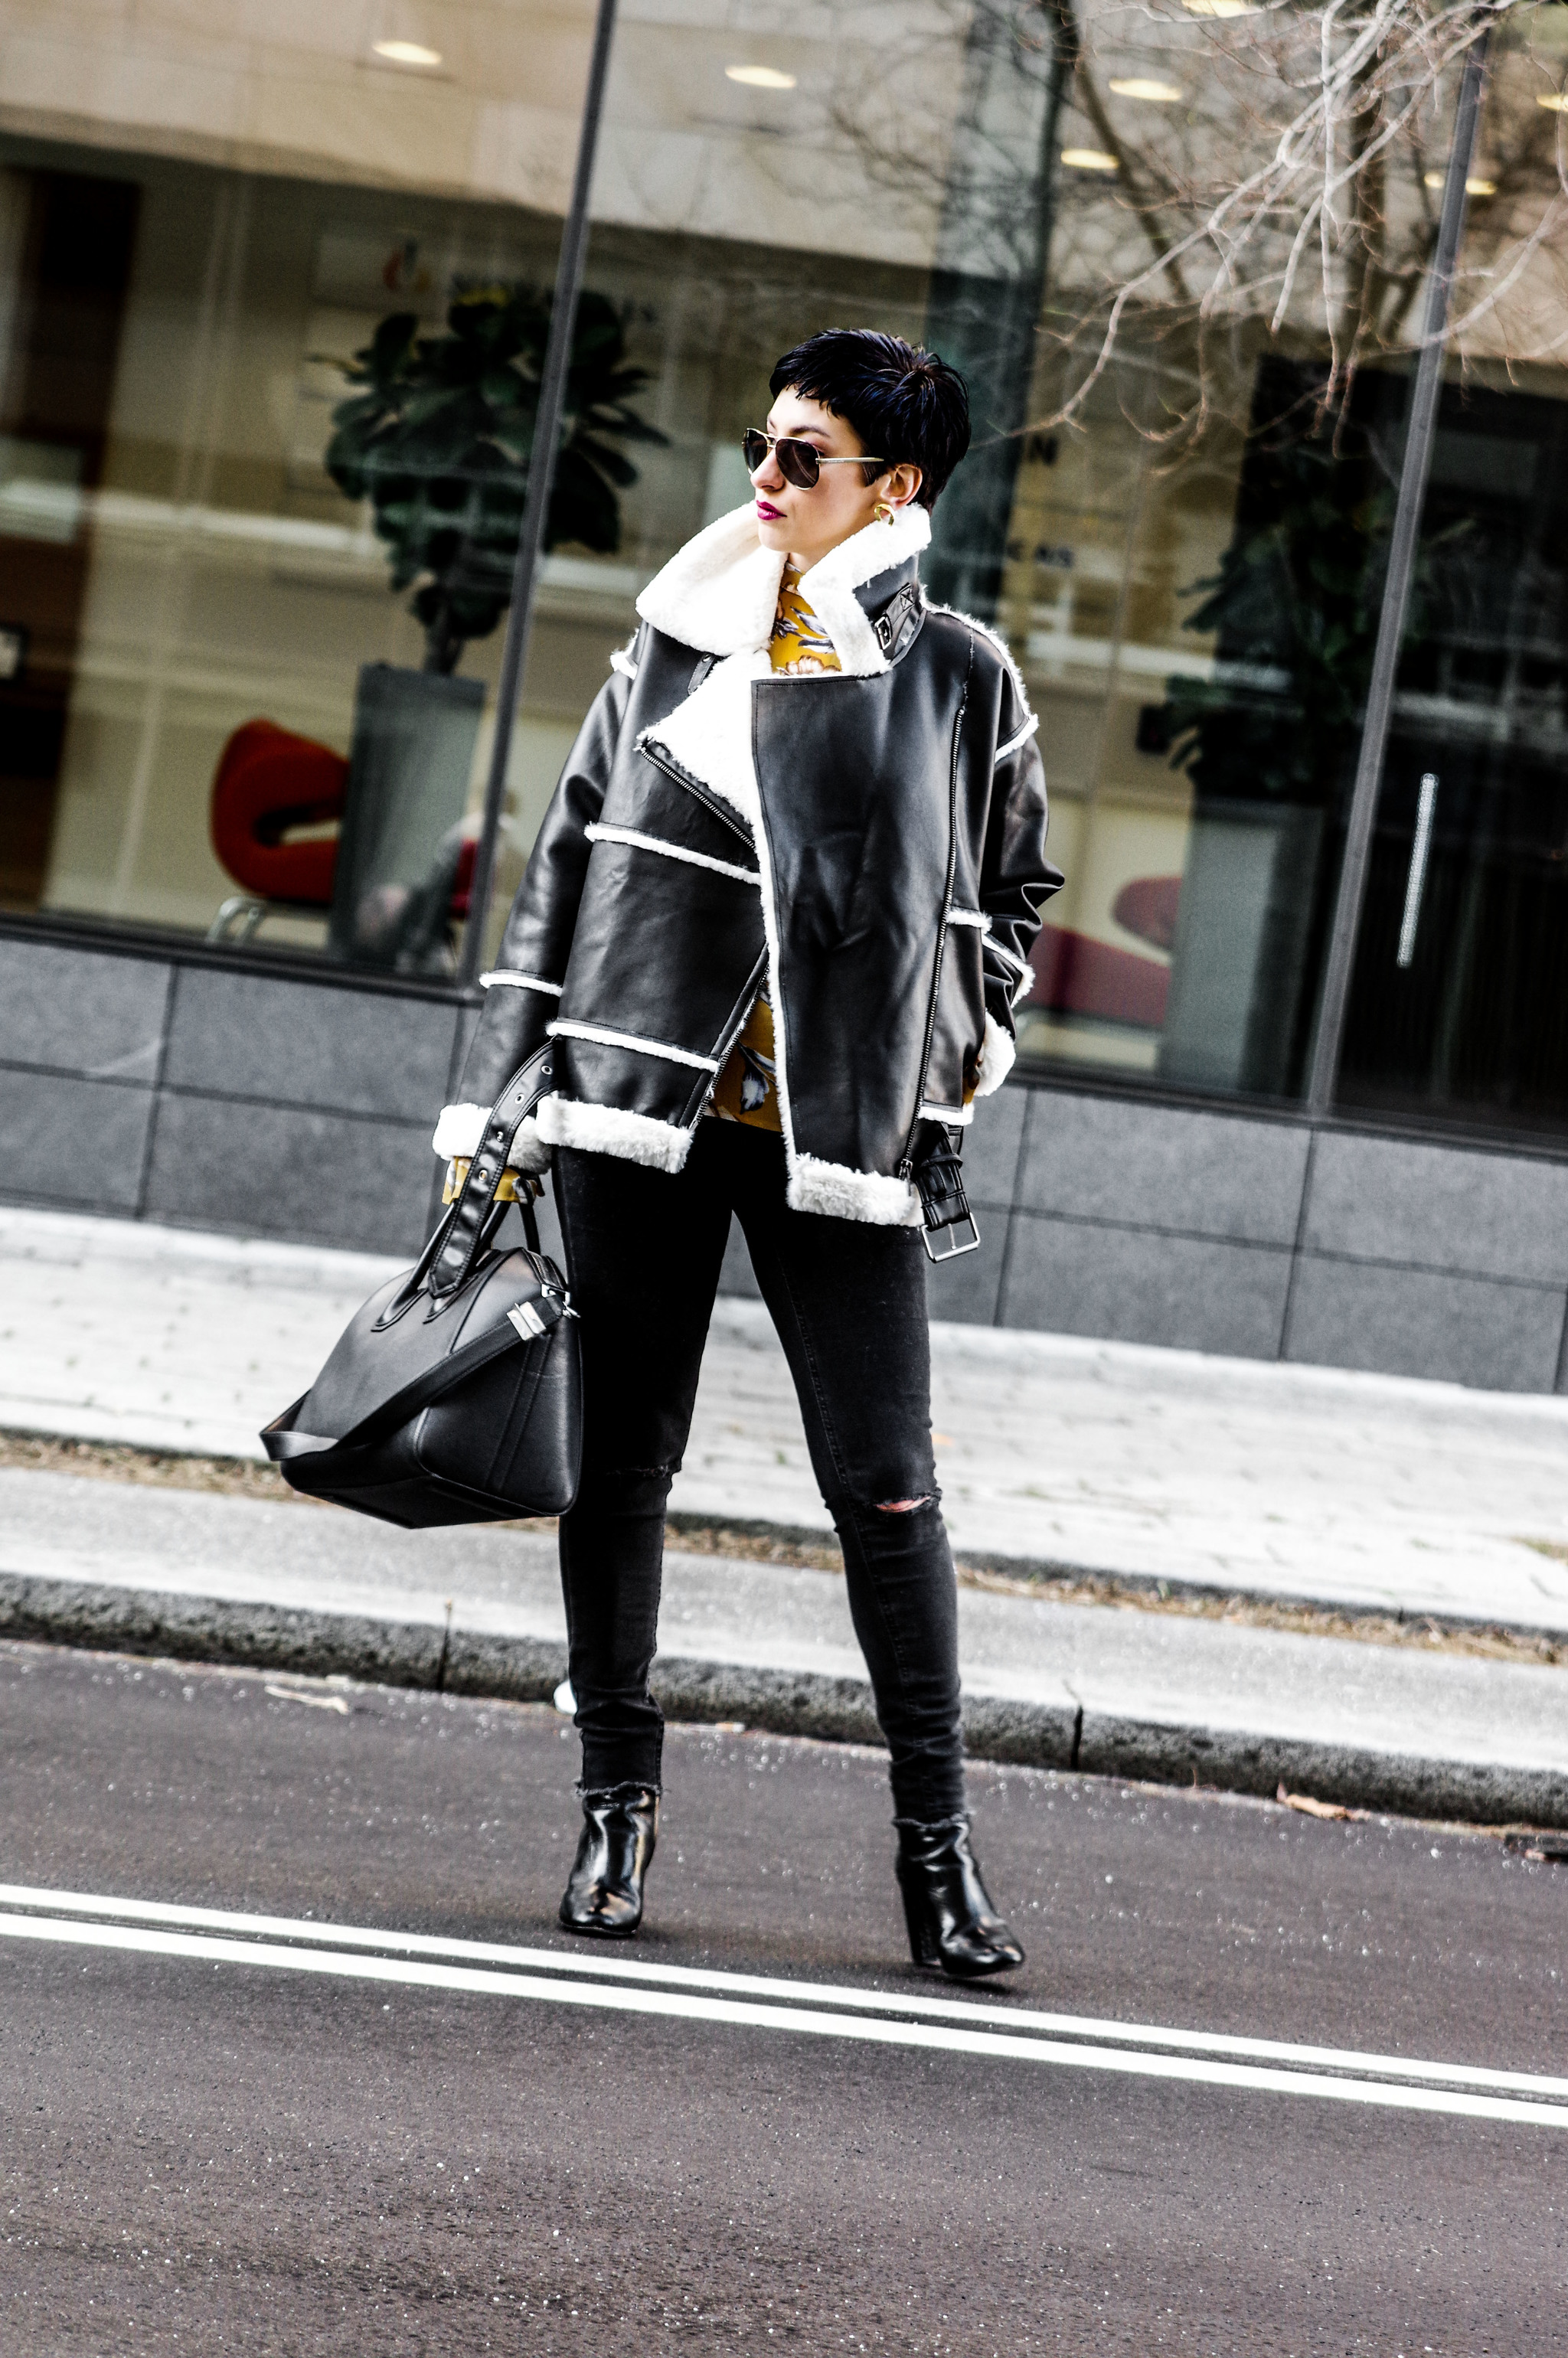 streetsyle winter outfit, outfit look for winter, coat, jeans, givenchy